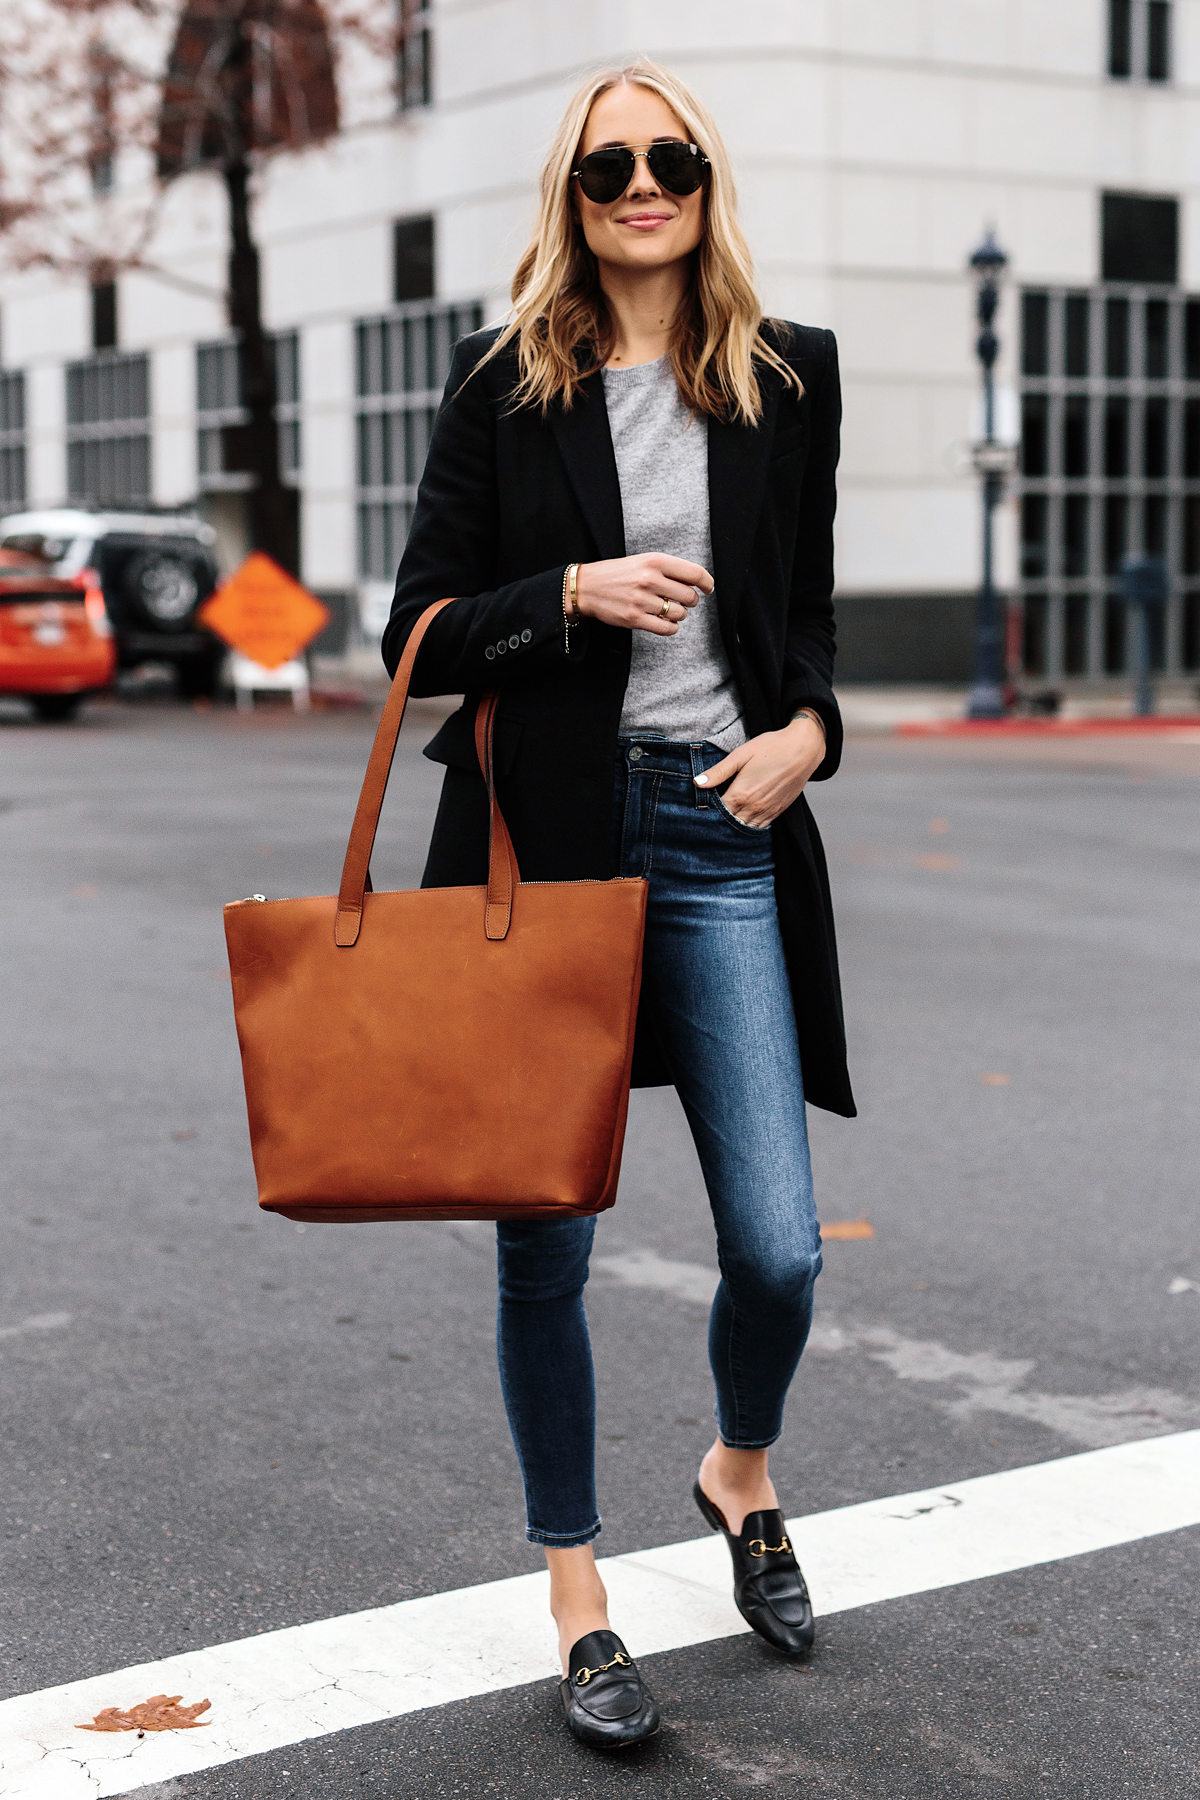 Blonde Woman Wearing SLATE Cognac Tote Black Wool Coat Grey Sweater Denim Skinny Jeans Gucci Mules Outfit Fashion Jackson San Diego Fashion Blogger Street Style